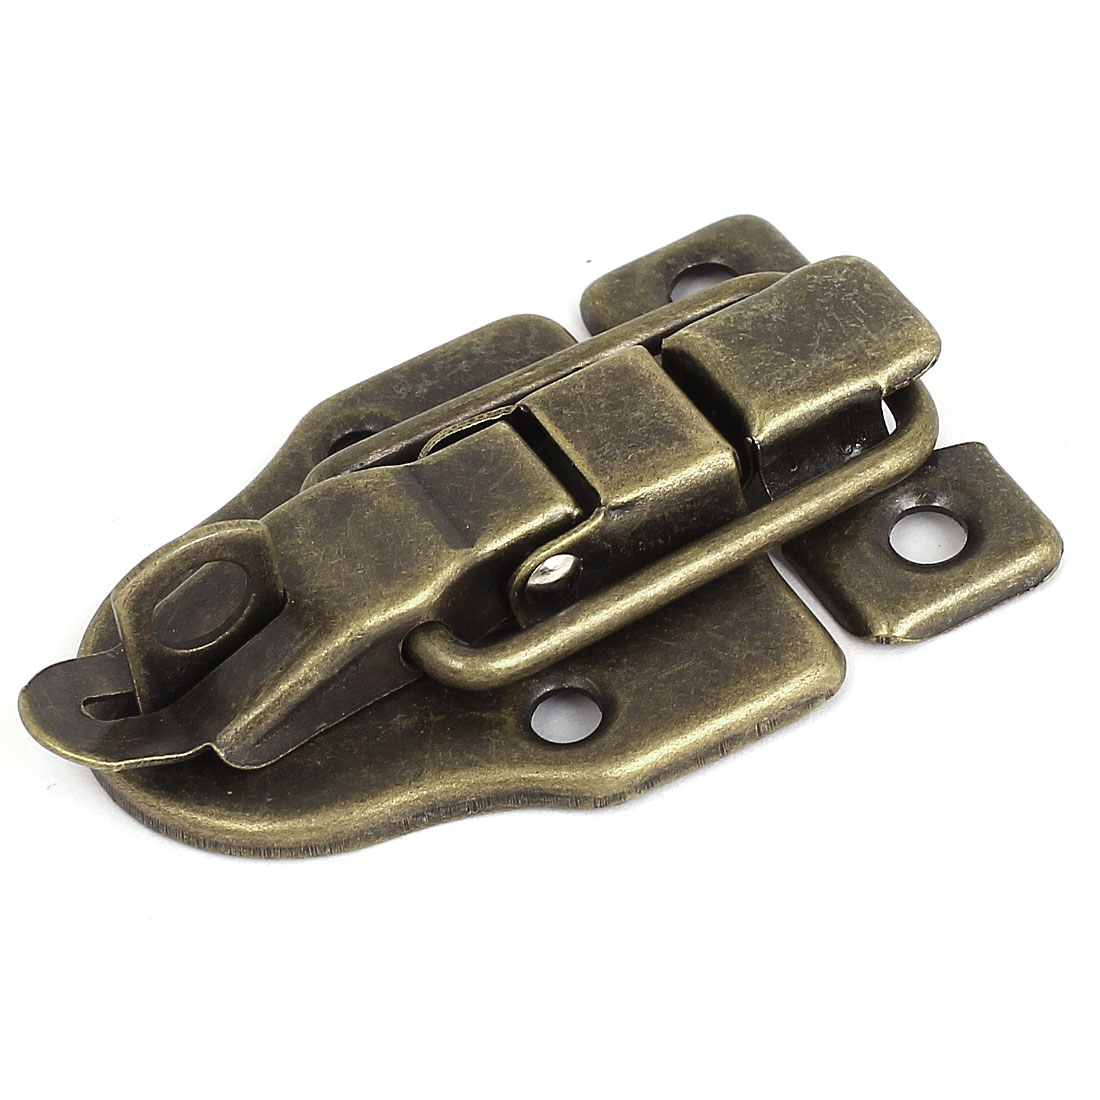 Cabinet Boxes Duckbilled Metal Toggle Latch Catch Hasp Bronze Tone w Screws